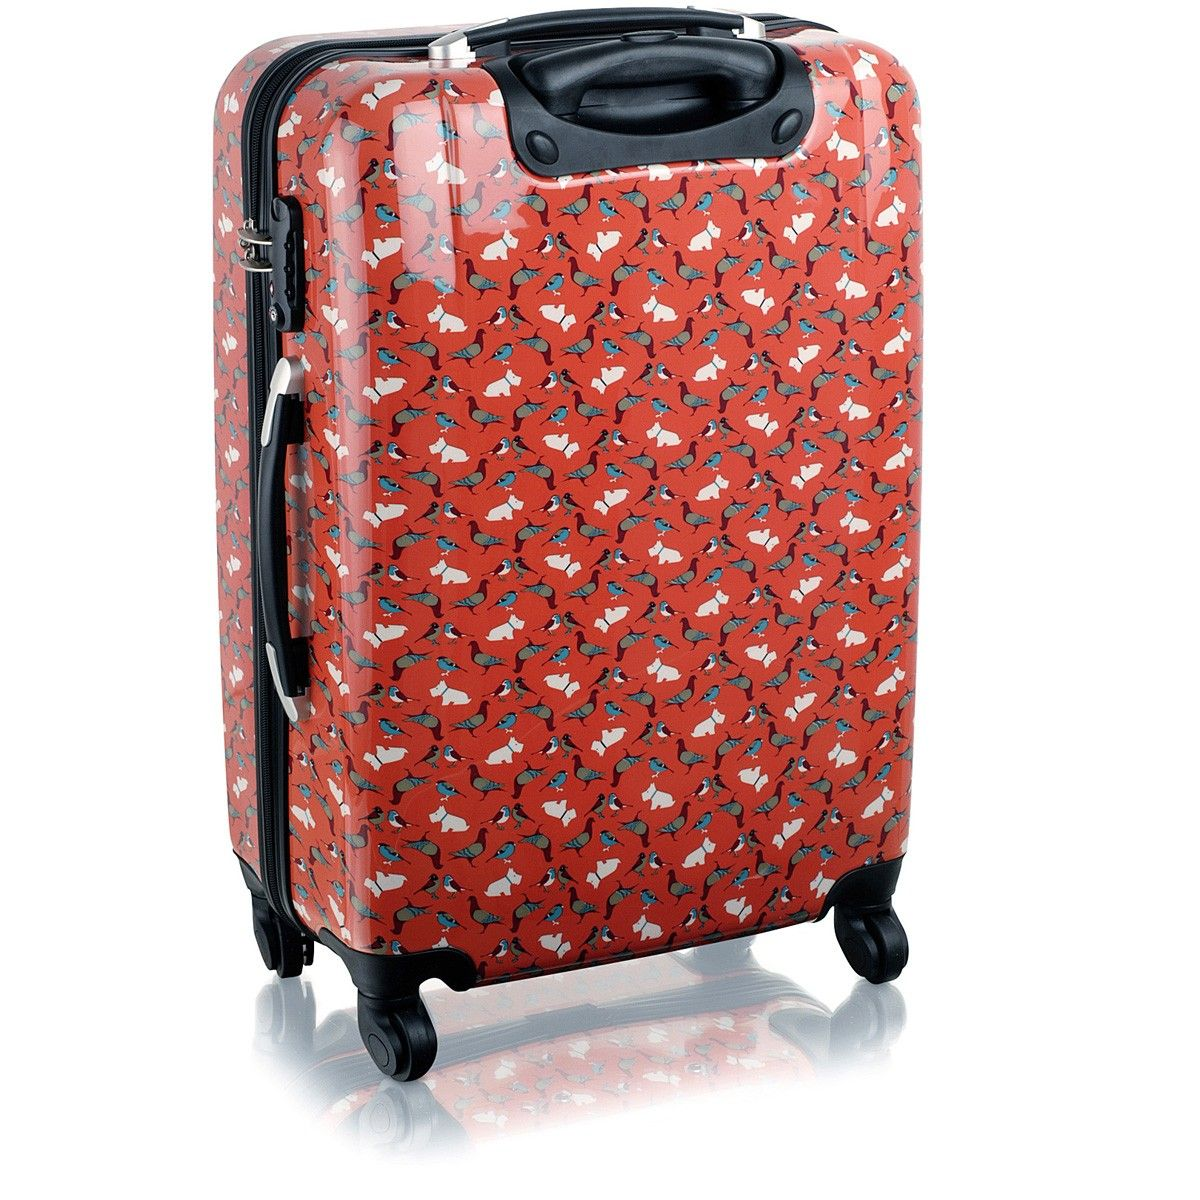 a little bird told me medium wheeled suitcase > buy suitcase a little bird told me medium wheeled suitcase > buy suitcase online at radley